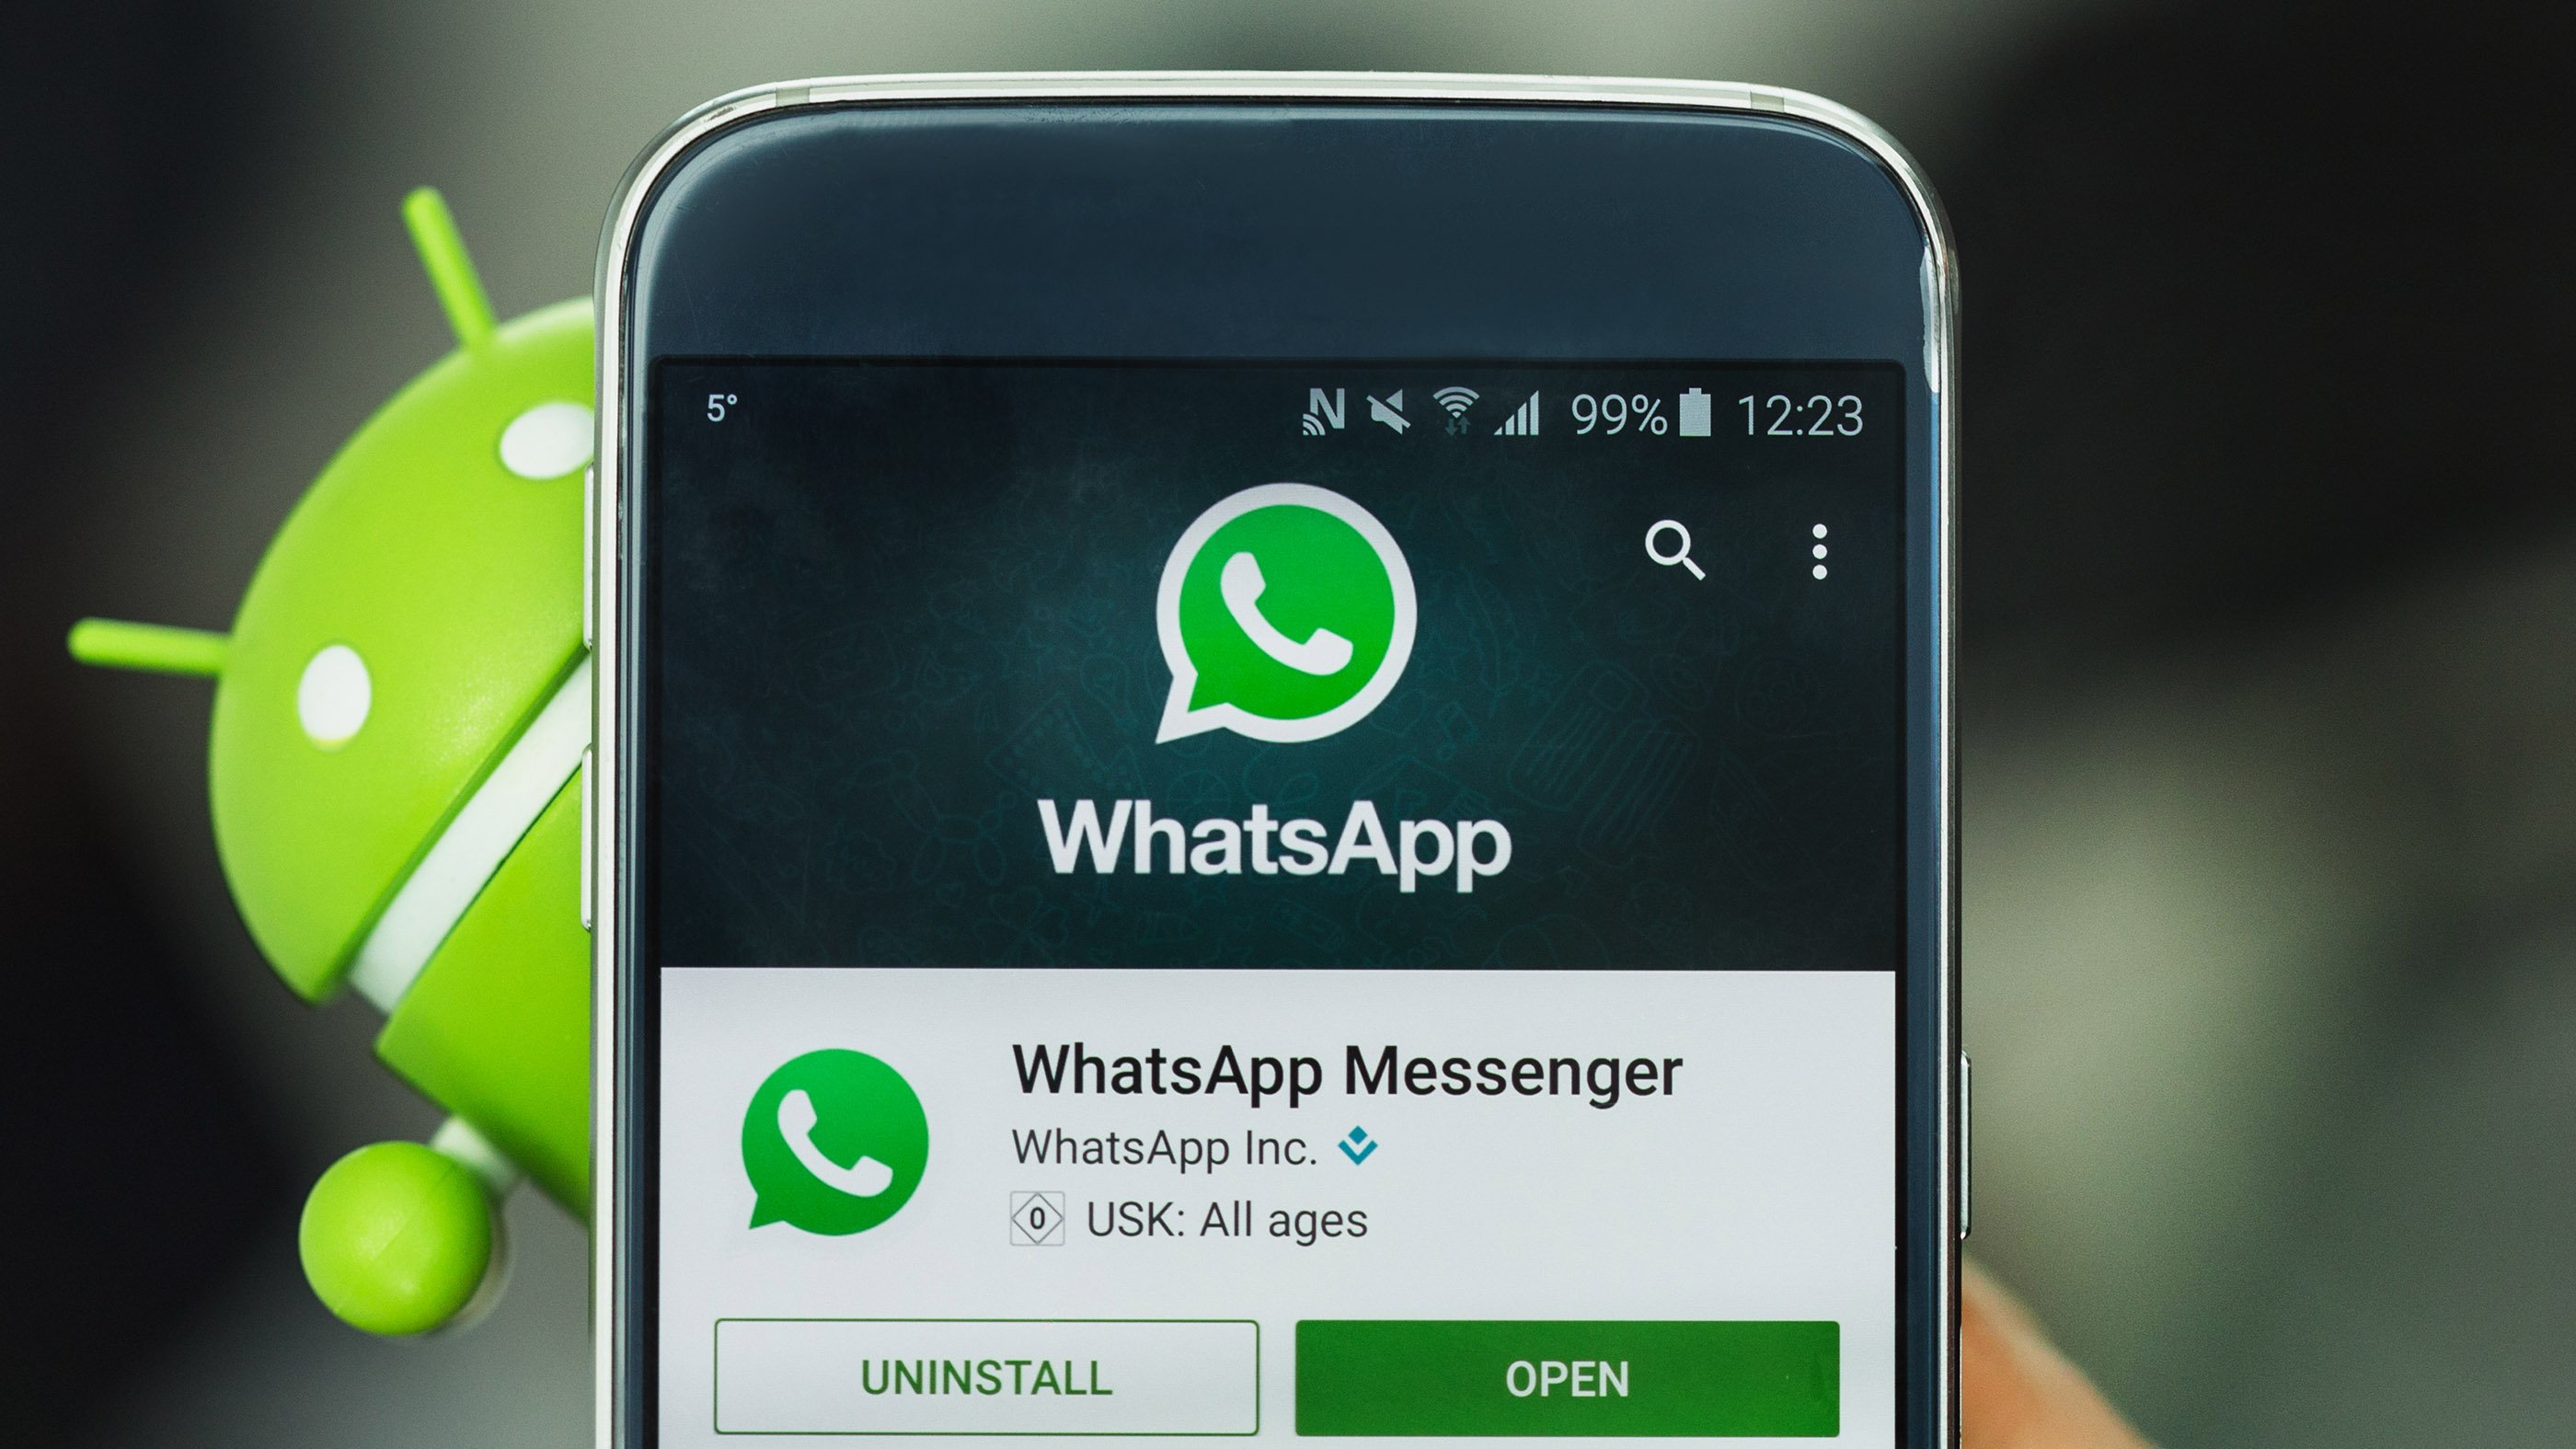 WhatsApp now helps you to delete messages after you ship them